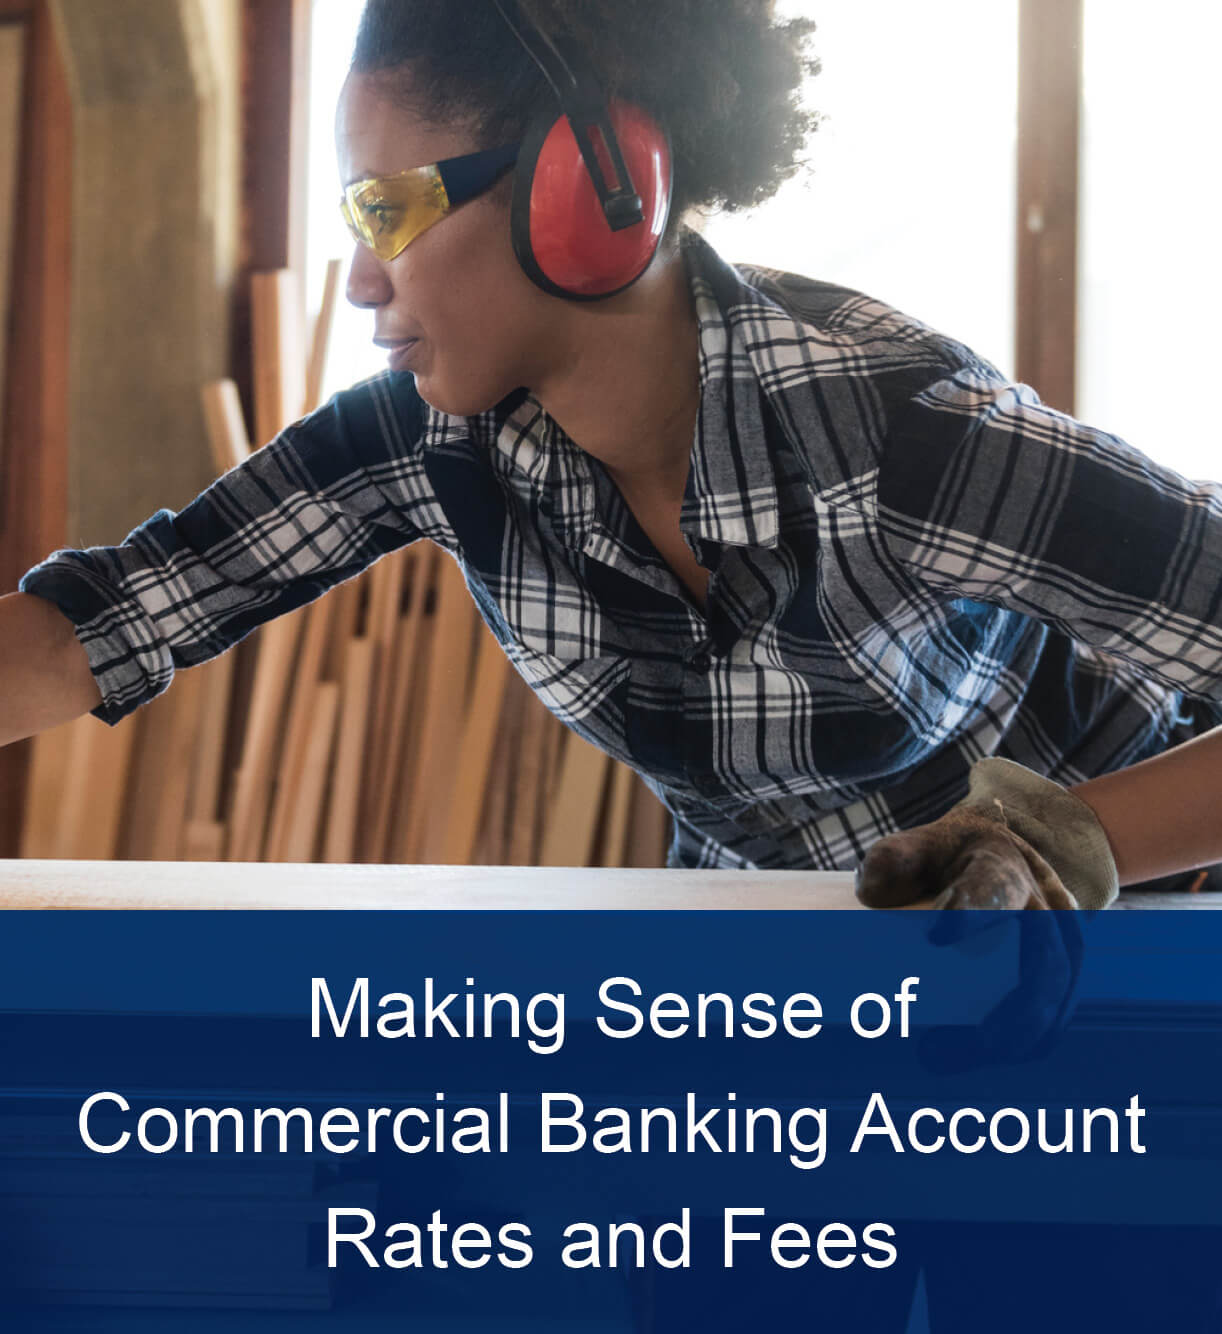 Making Sense of Commercial Banking Account Rates and Fees